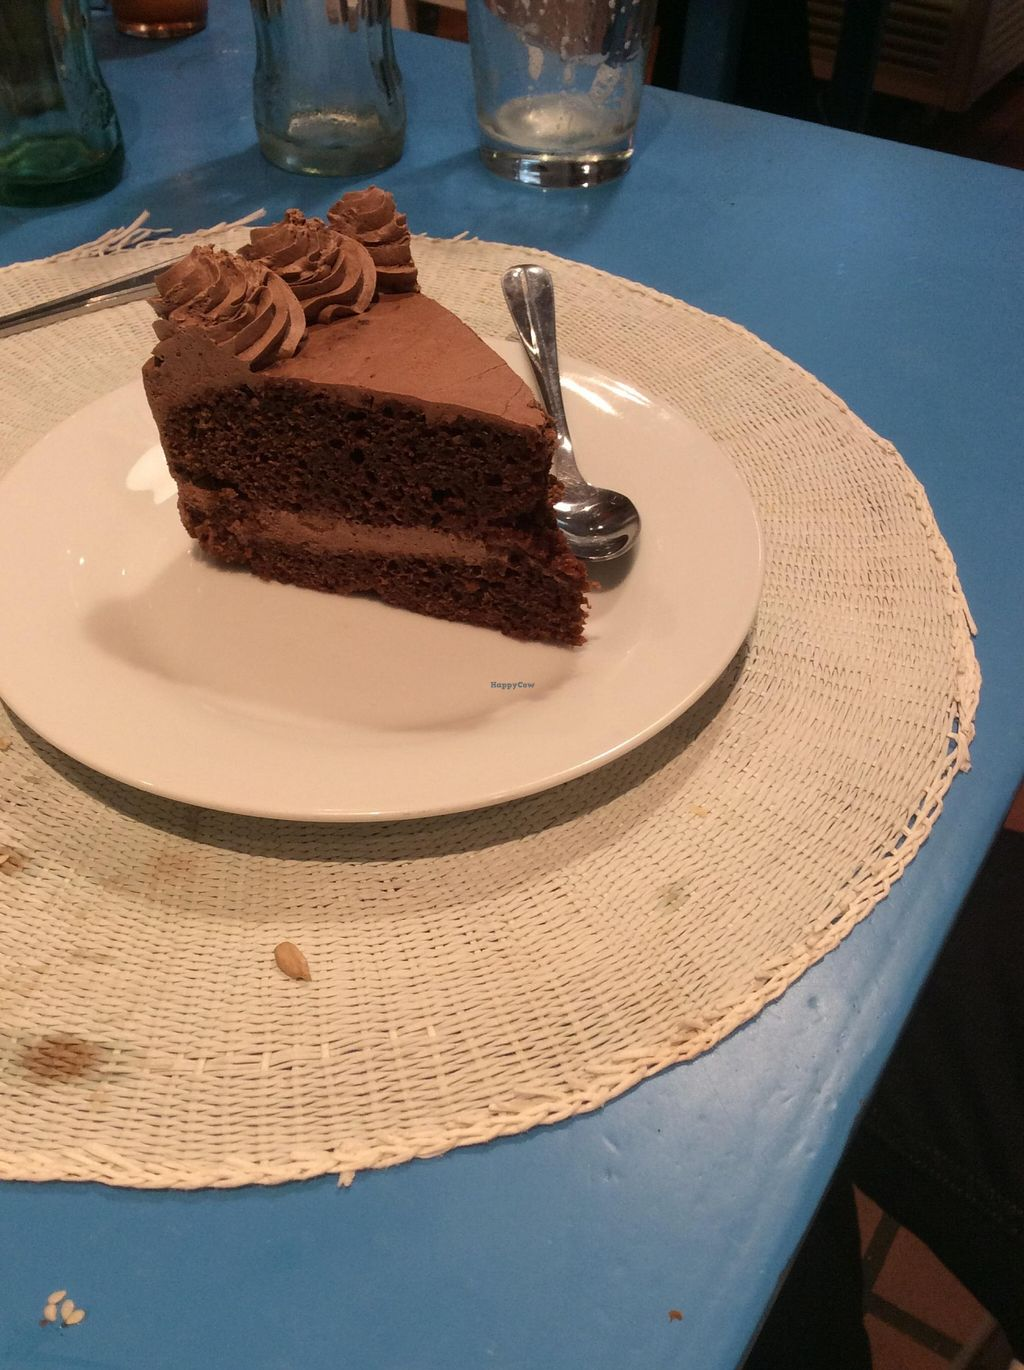 """Photo of CLOSED: Didi Cafe  by <a href=""""/members/profile/AndreaD"""">AndreaD</a> <br/>Vegan chocolate gateaux. Perfection on a plate <br/> November 12, 2015  - <a href='/contact/abuse/image/61120/124709'>Report</a>"""